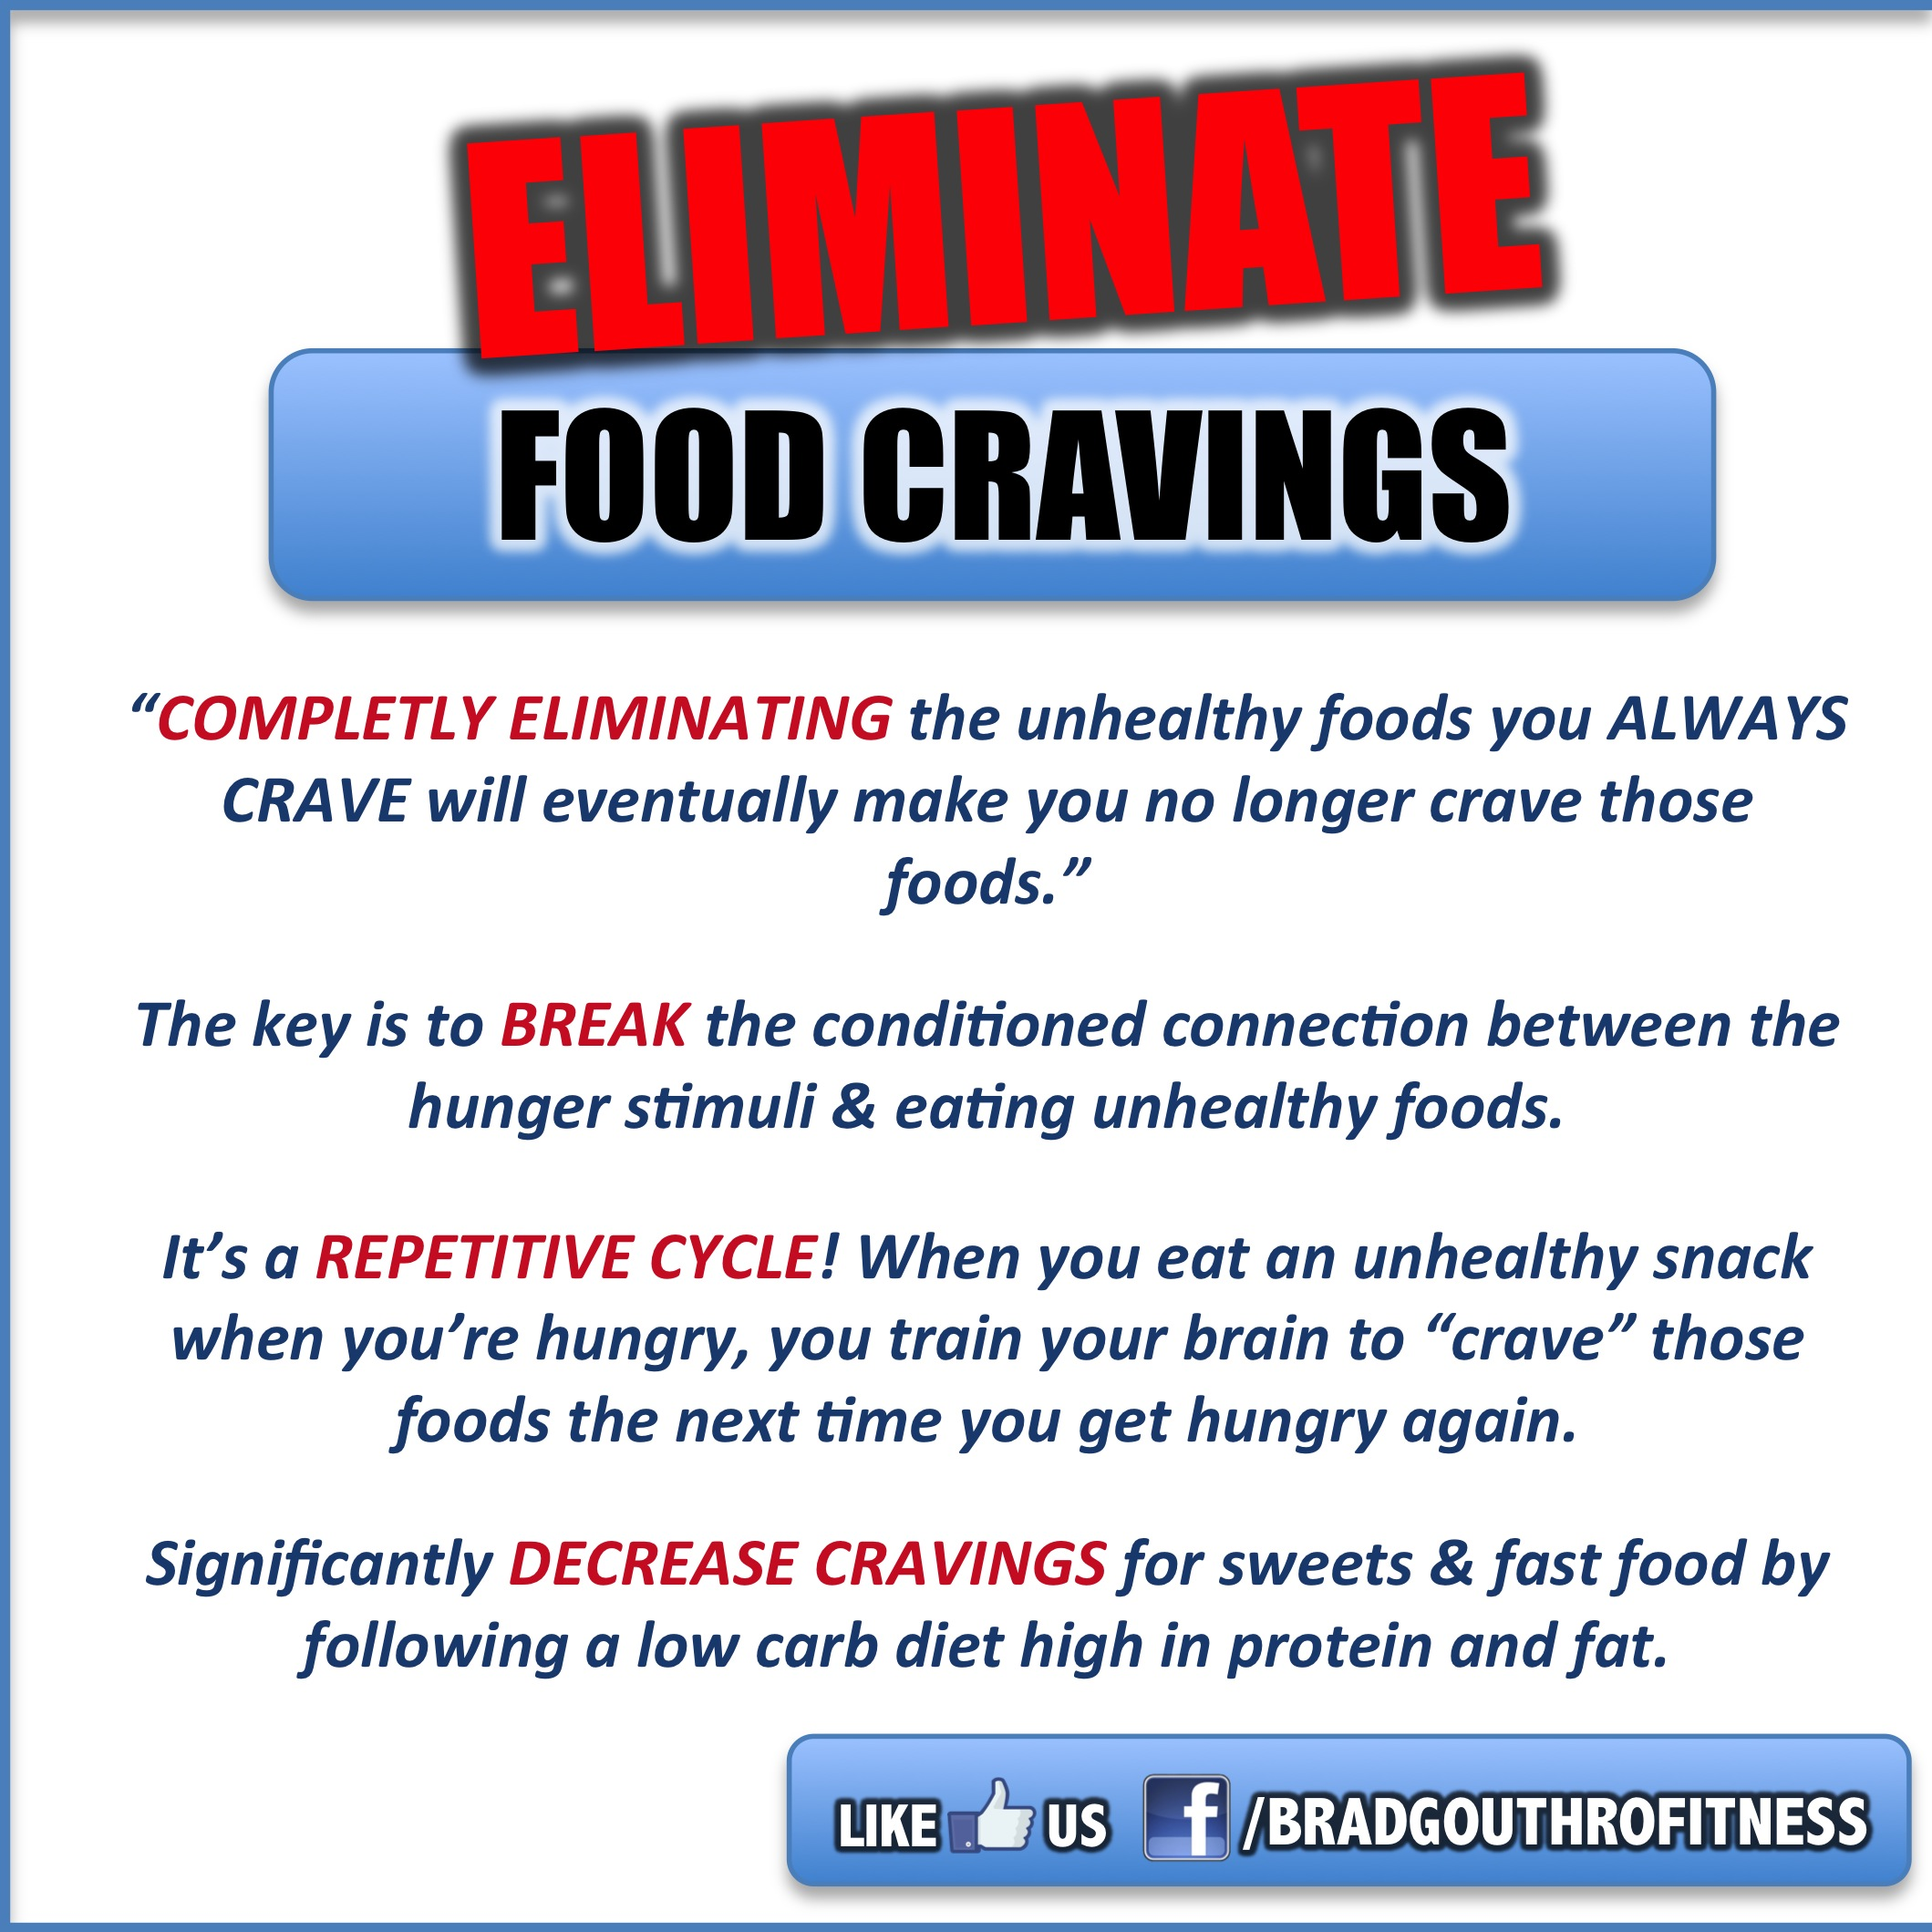 How To Completely Eliminate Food Cravings In 14 Days